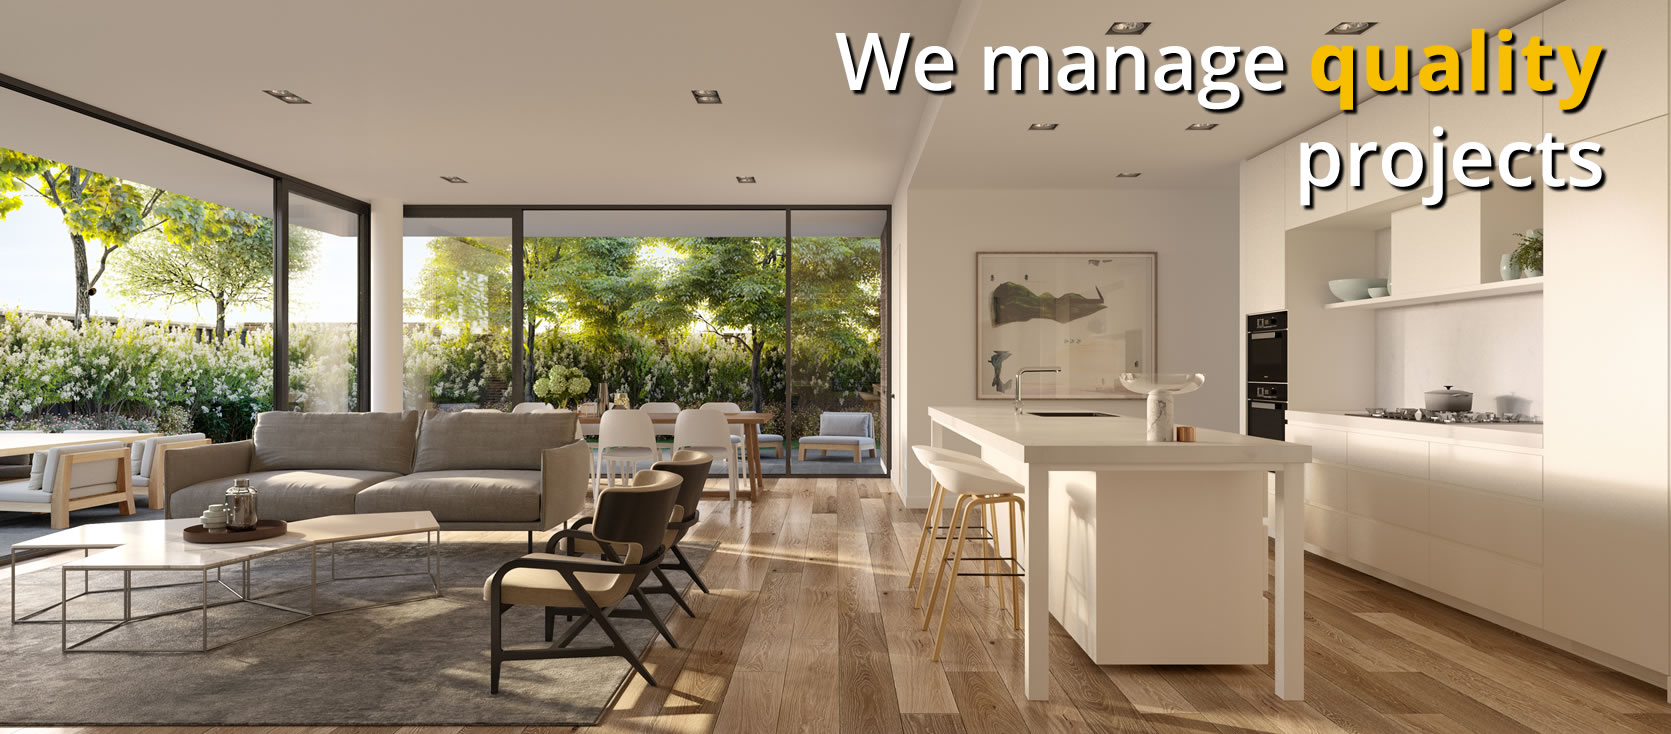 We manage <b>Quality</b> projects